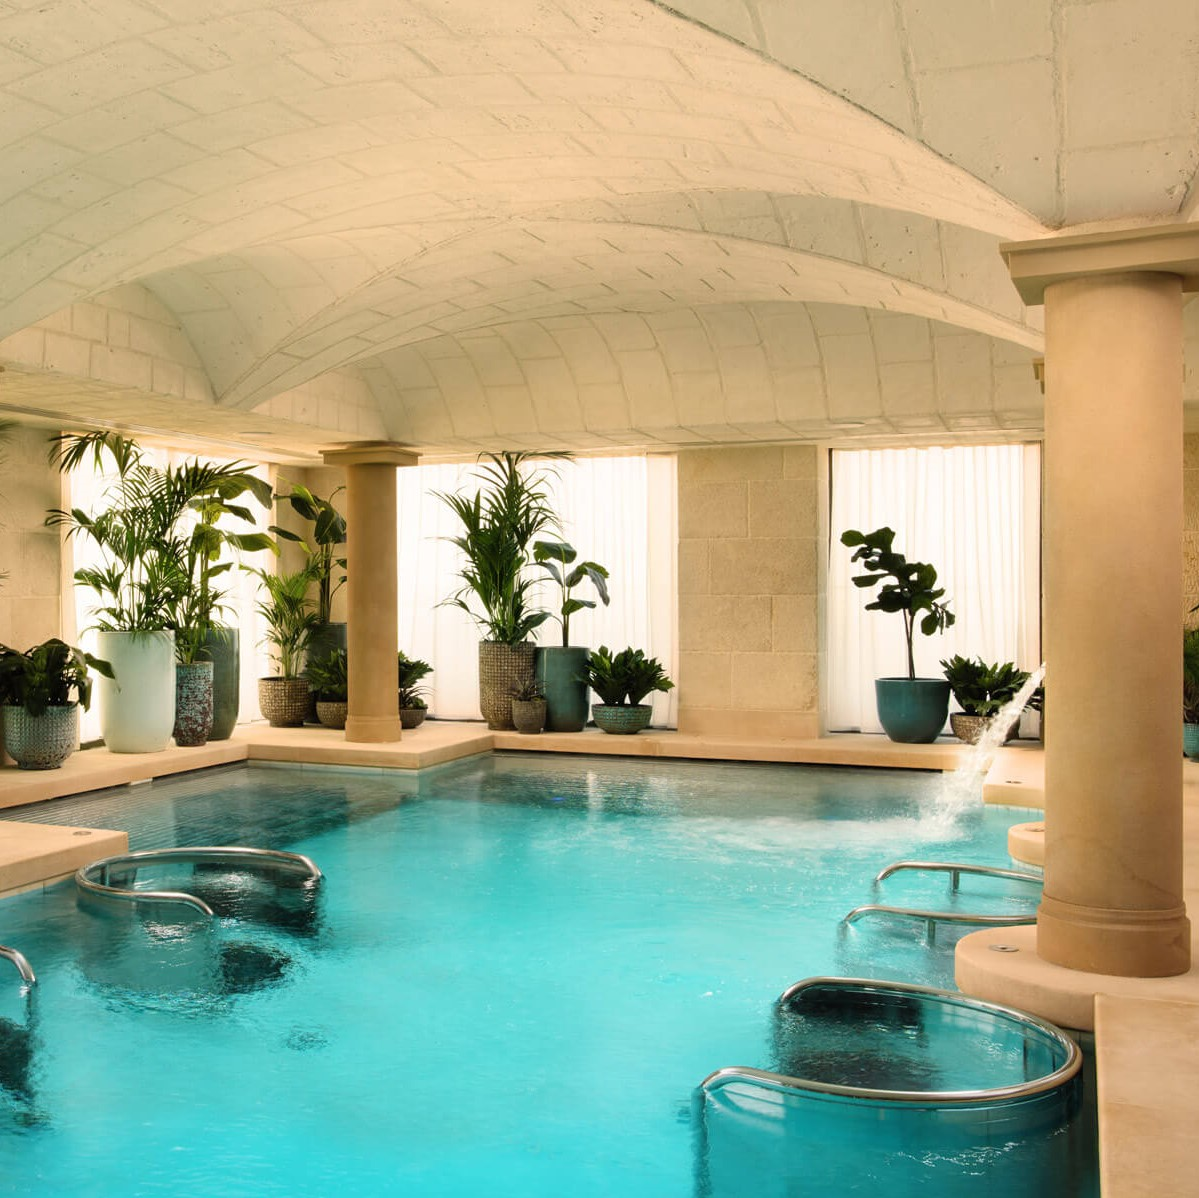 THE THREE GRACES SPA